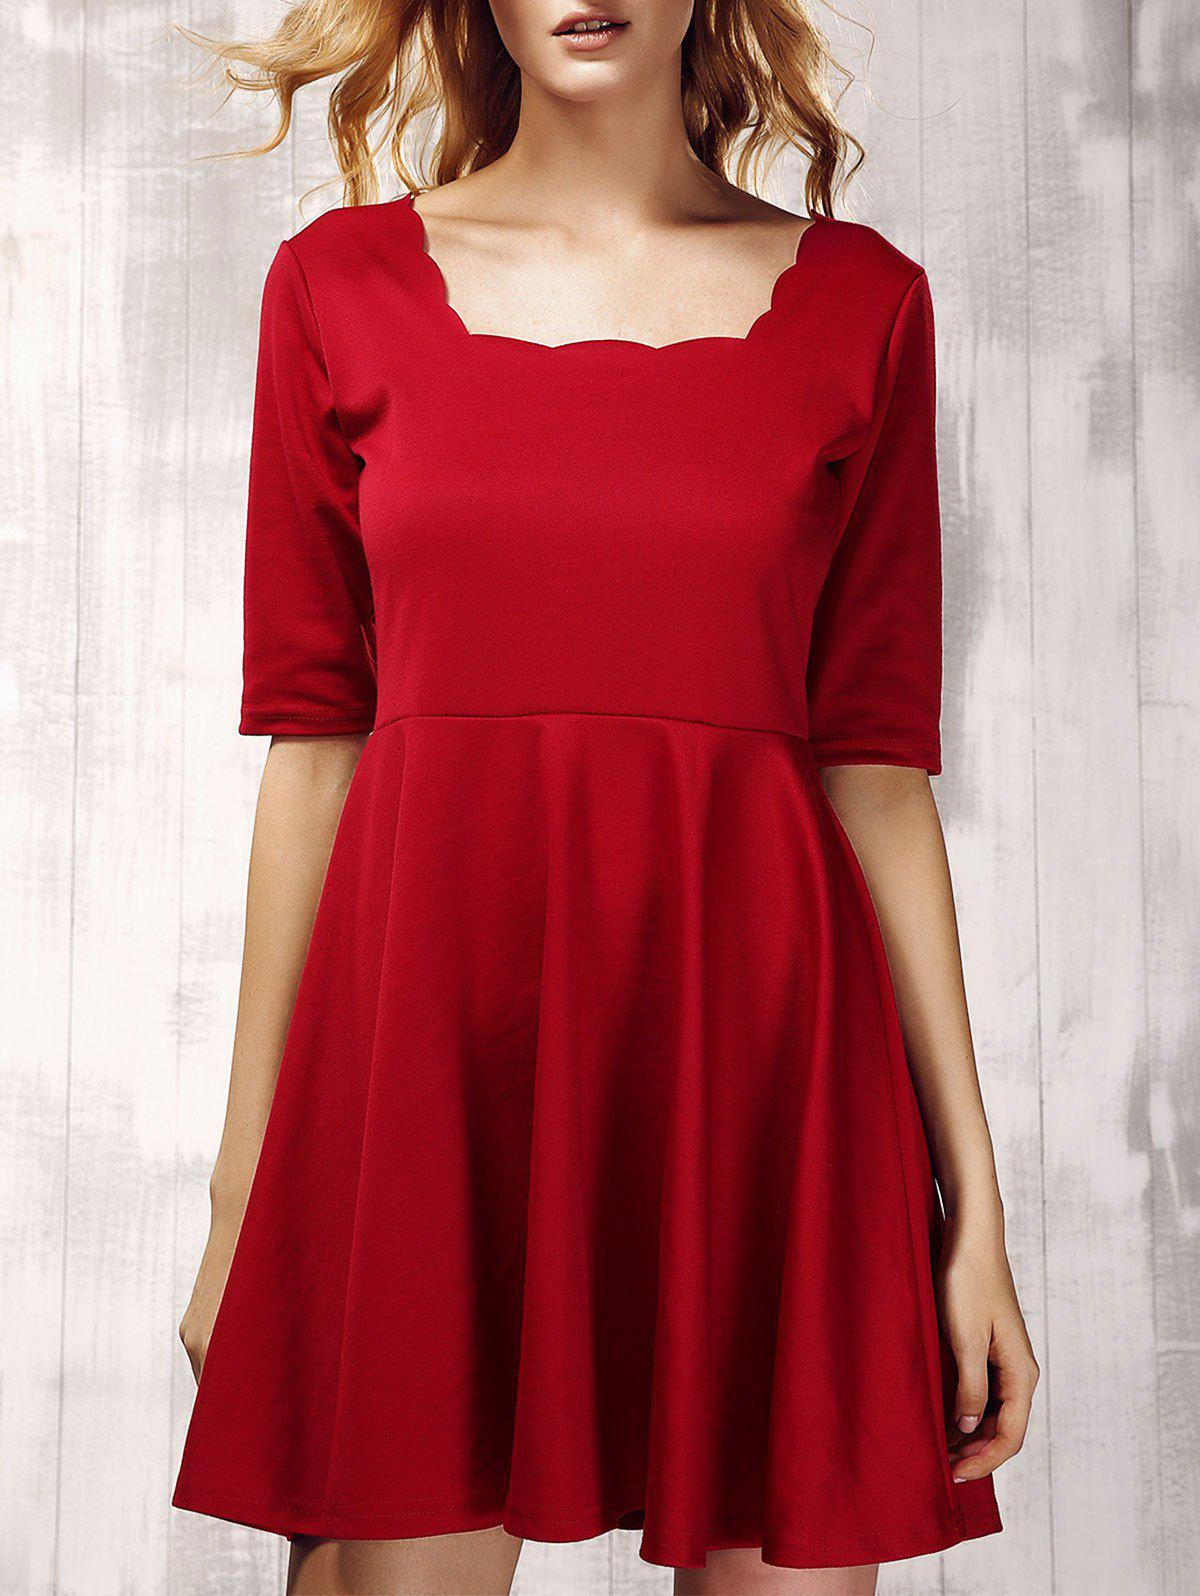 Stylish Women's 1/2 Sleeve Pure Color Pleated Dress - WINE RED XL